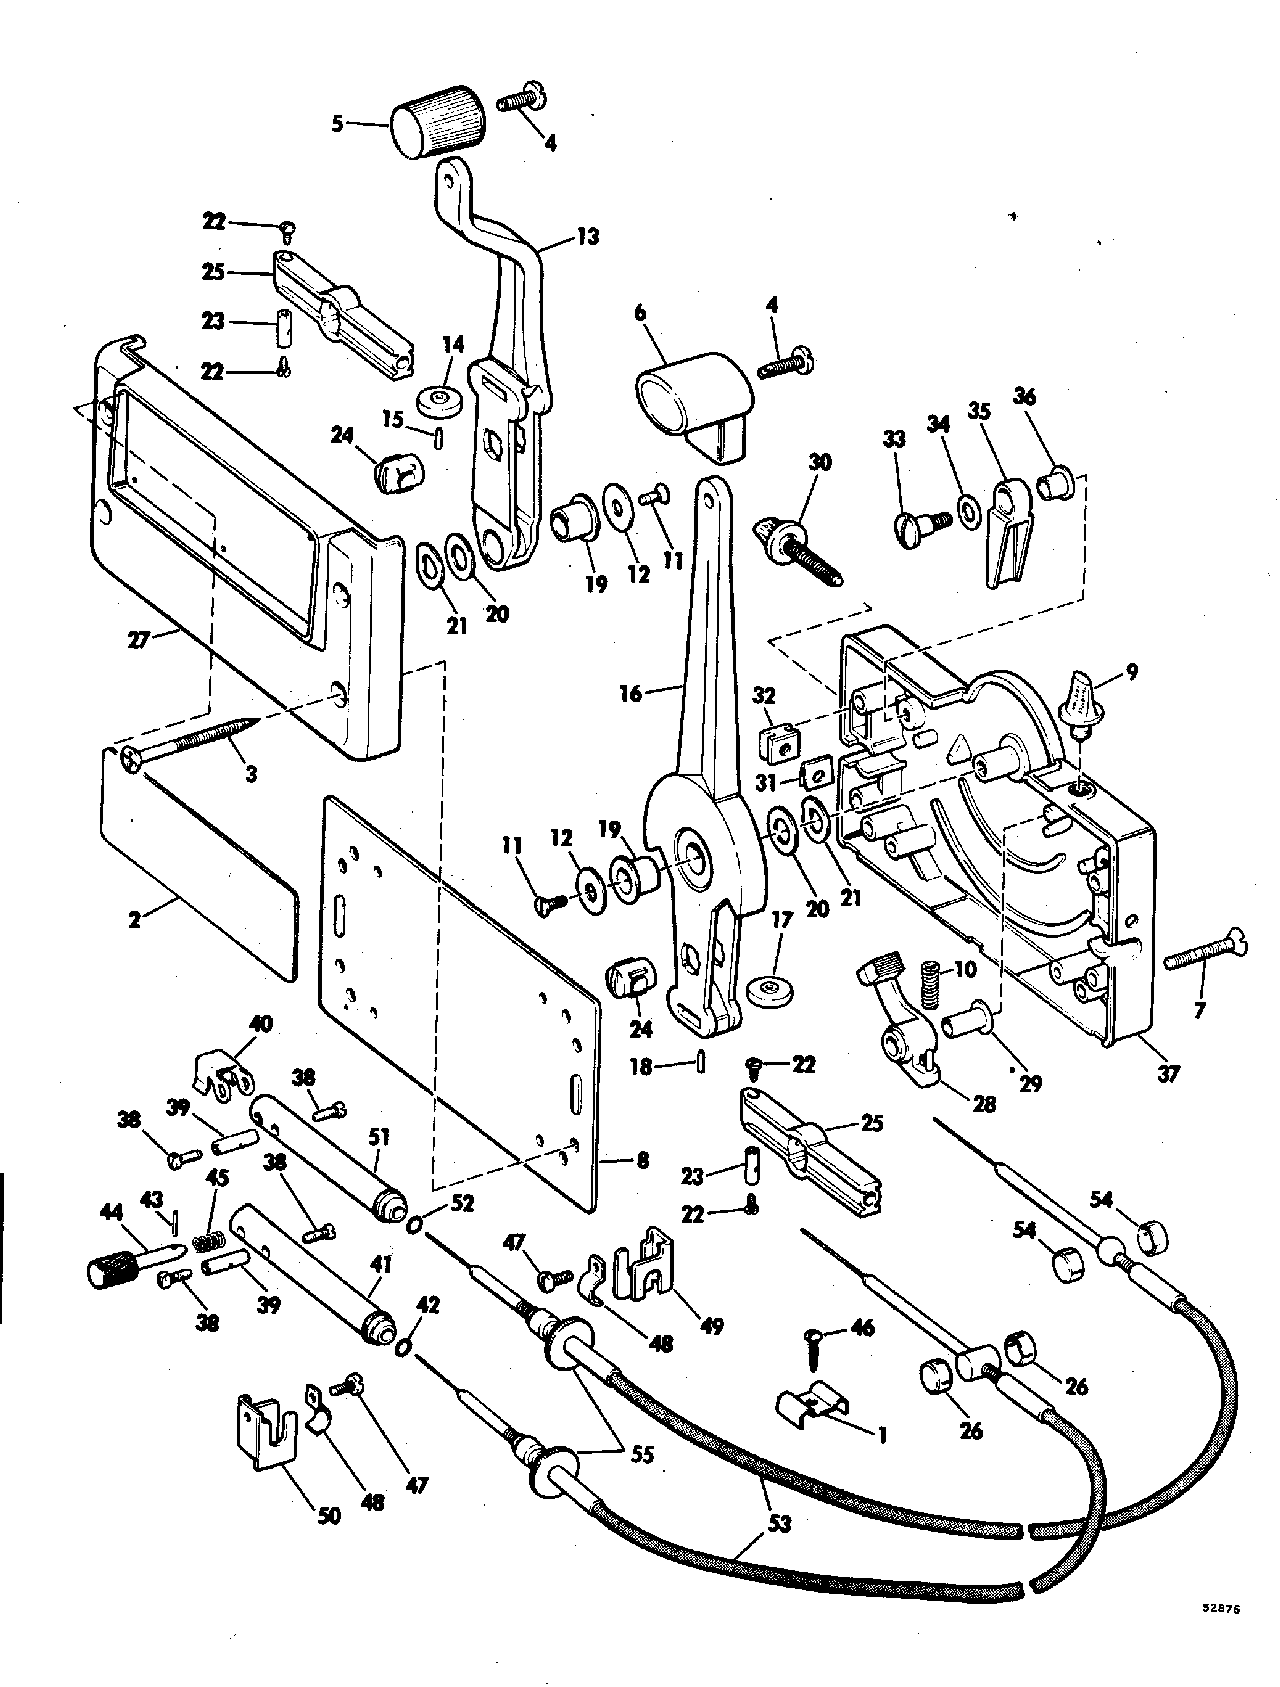 Mercury Outboard Remote Control Electrical Schematic